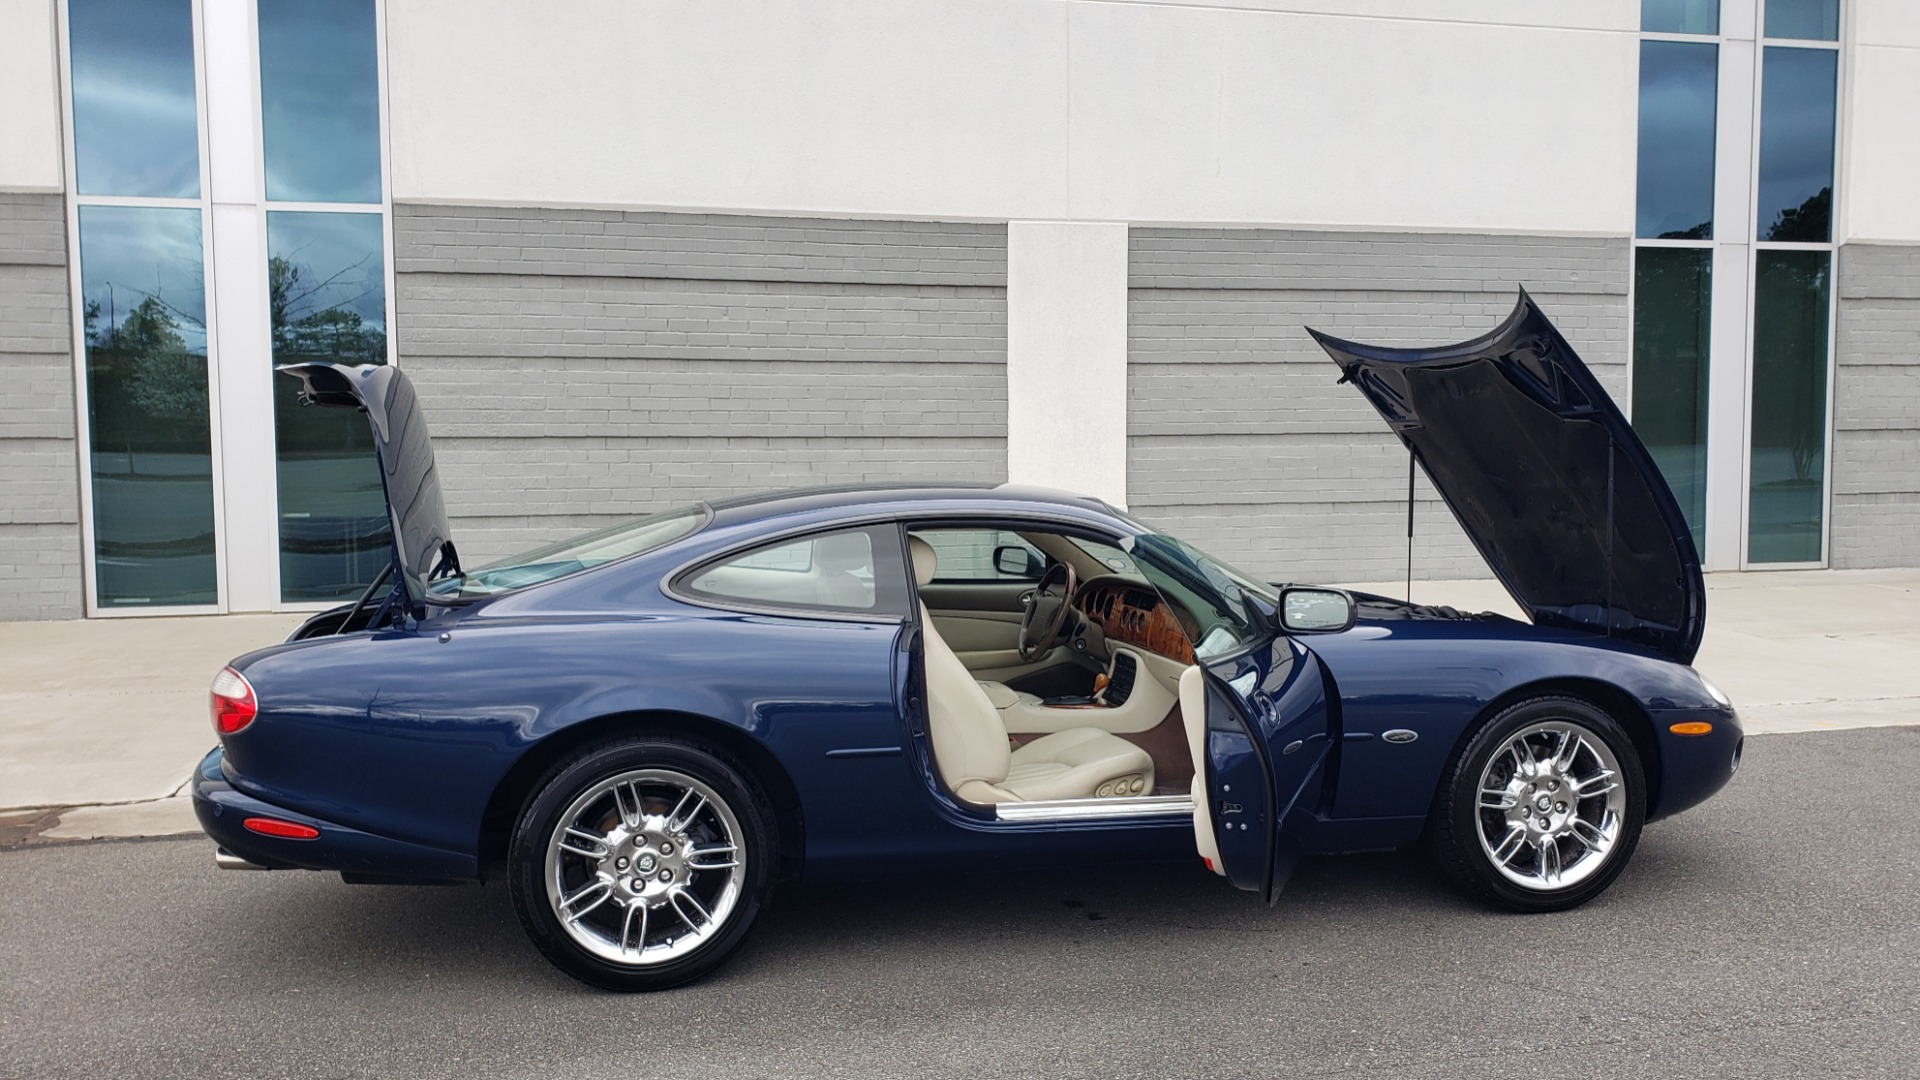 Used 2002 Jaguar XK8 COUPE / 4.0L V8 / 5-SPD AUTO / ALPINE SOUND / 18IN CHROME WHEELS for sale $16,450 at Formula Imports in Charlotte NC 28227 14